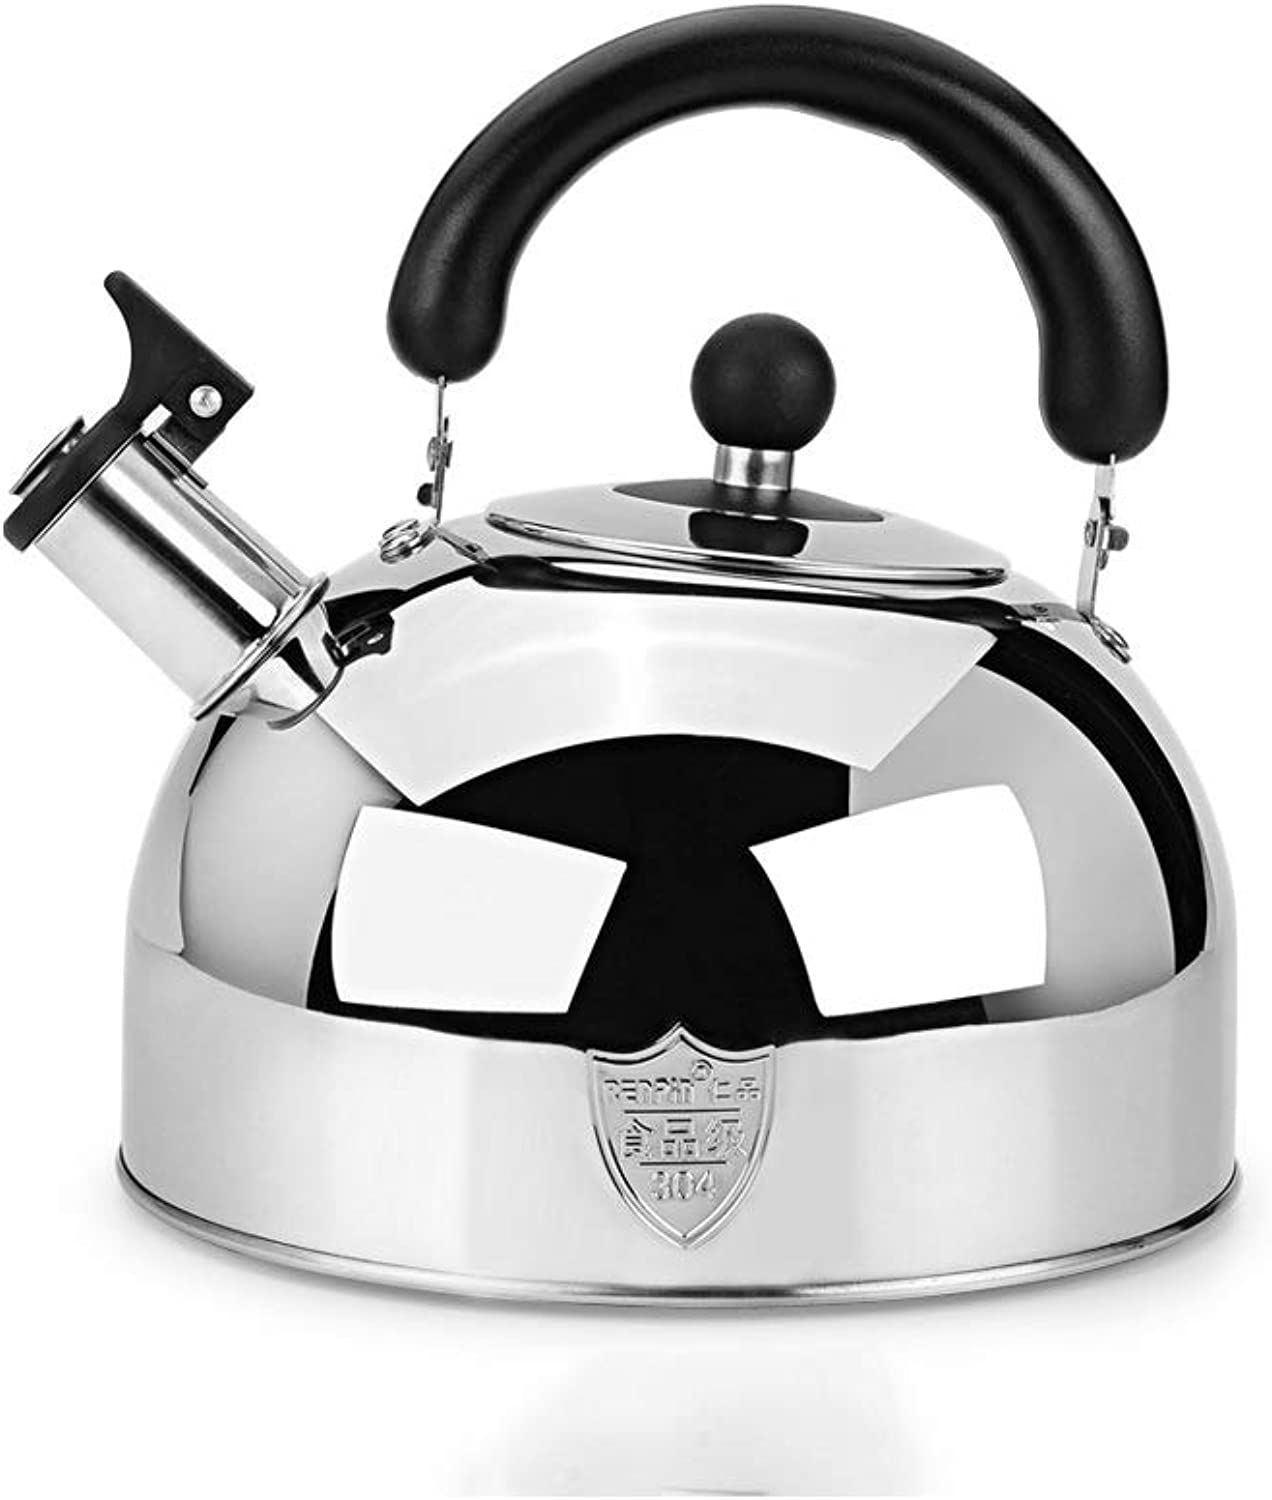 Tongboshi Kettle, 304 Stainless Steel Whistle Home Induction Cooker Large Capacity 5L Kettle, Gas Gas Universal, Silver